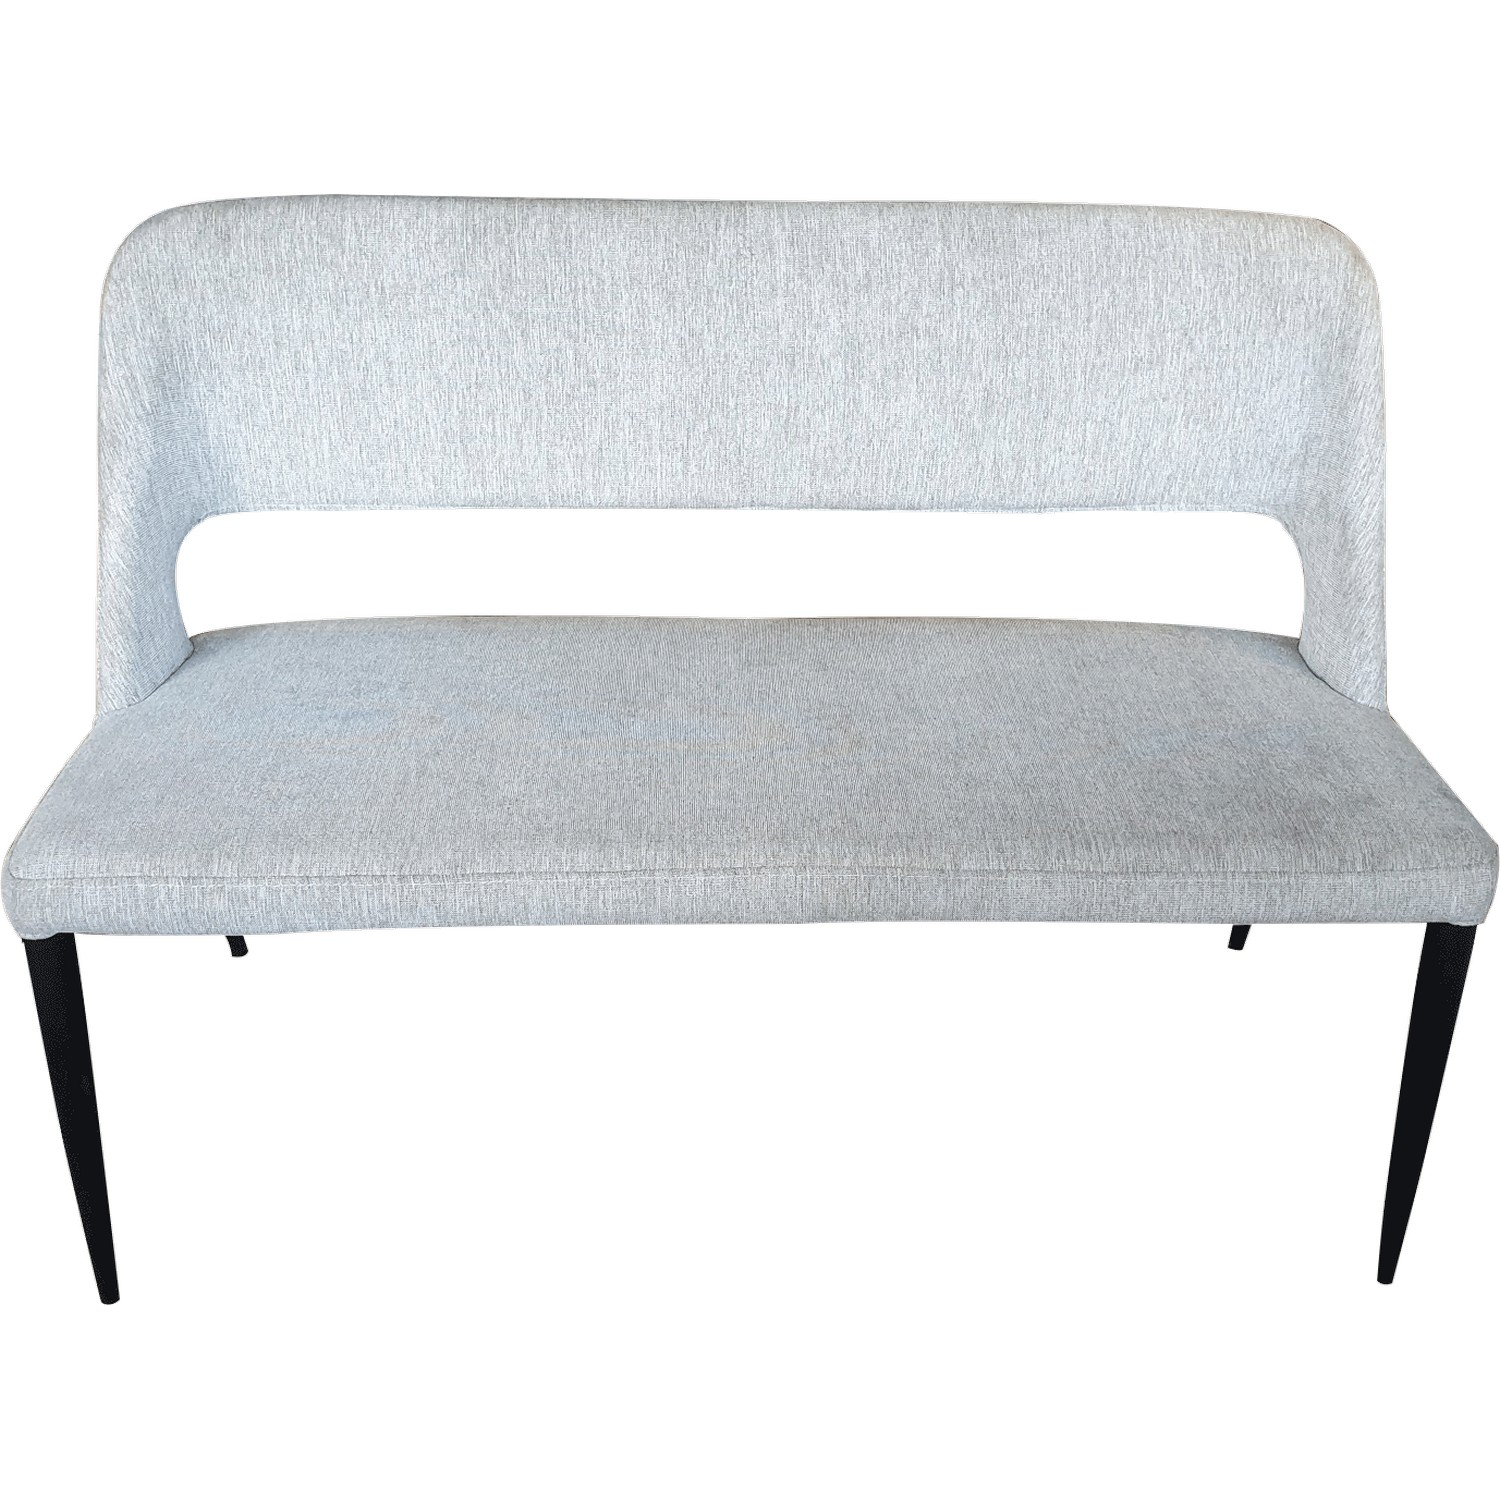 492l Long Bench Absolute Bedding